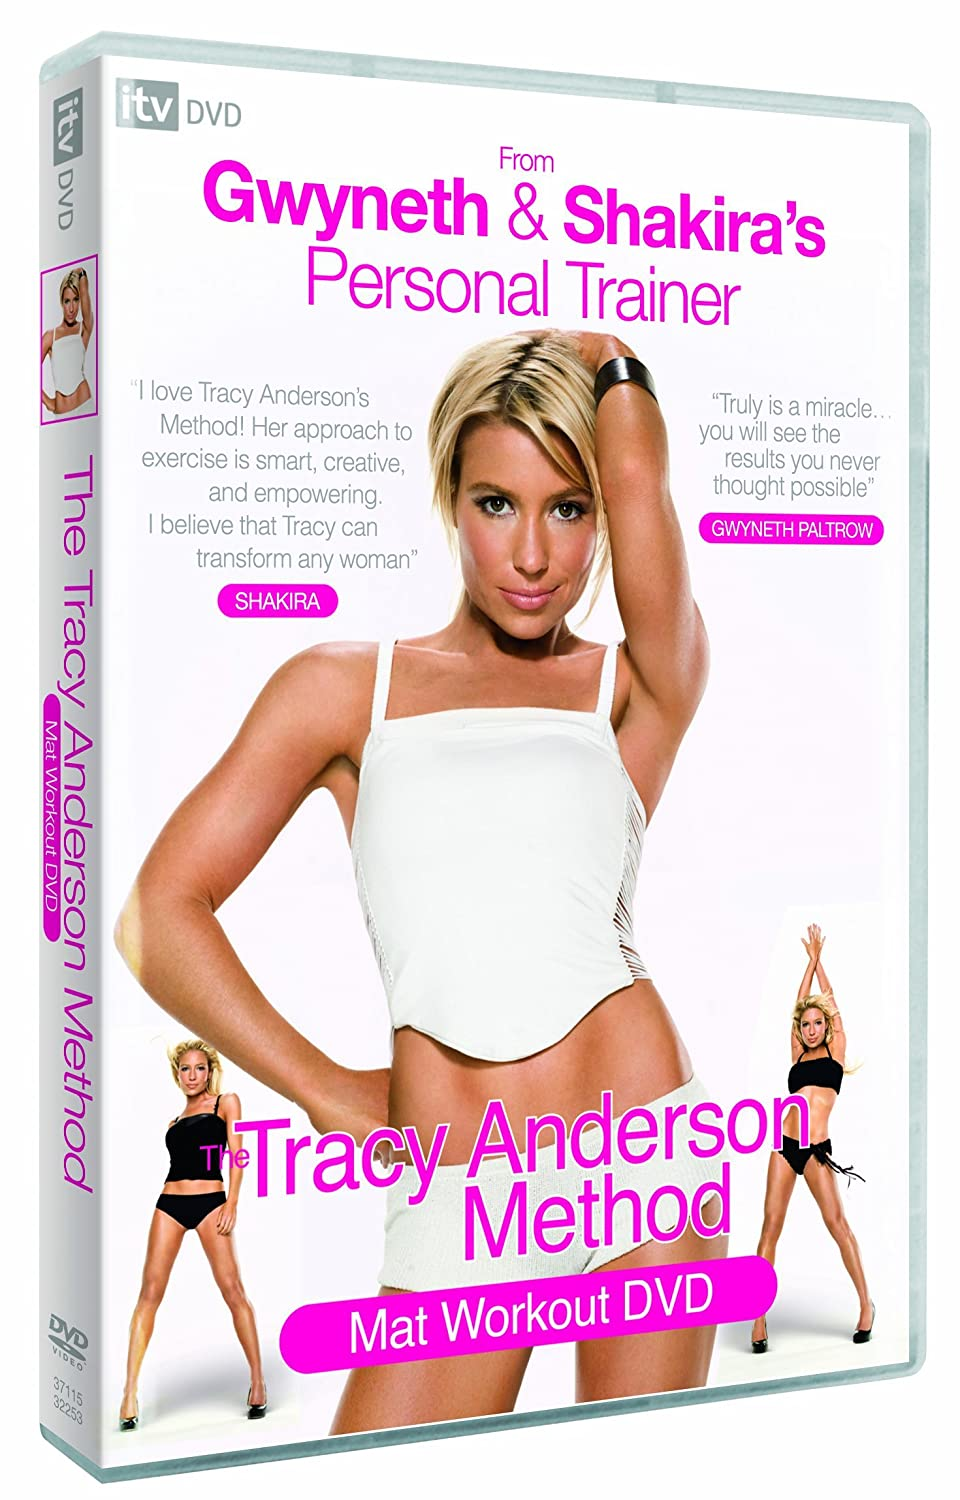 Our top winter fitness DVDs recommendations